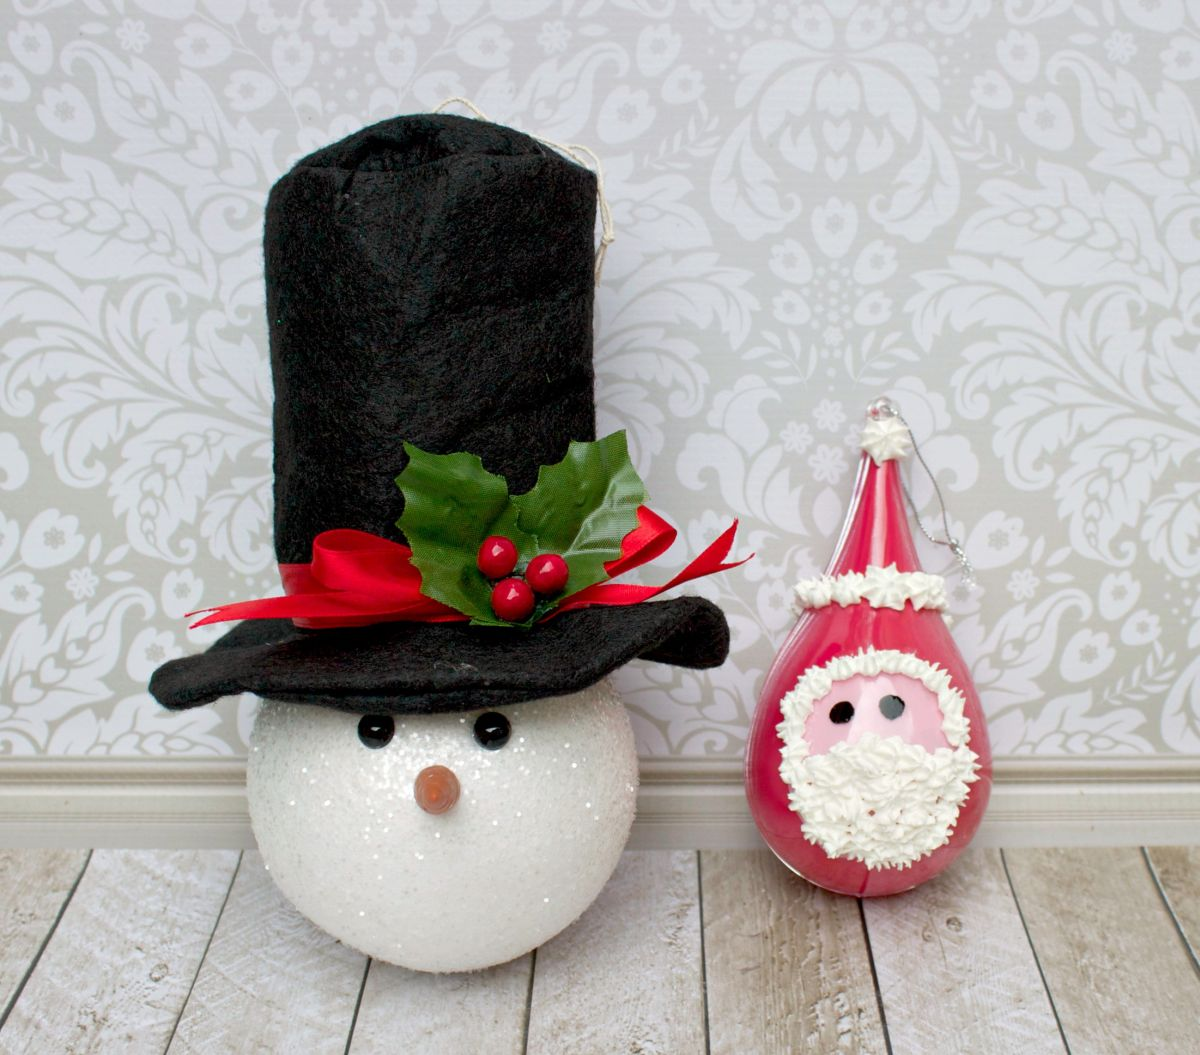 Christmas Ornaments You Can Make DIY